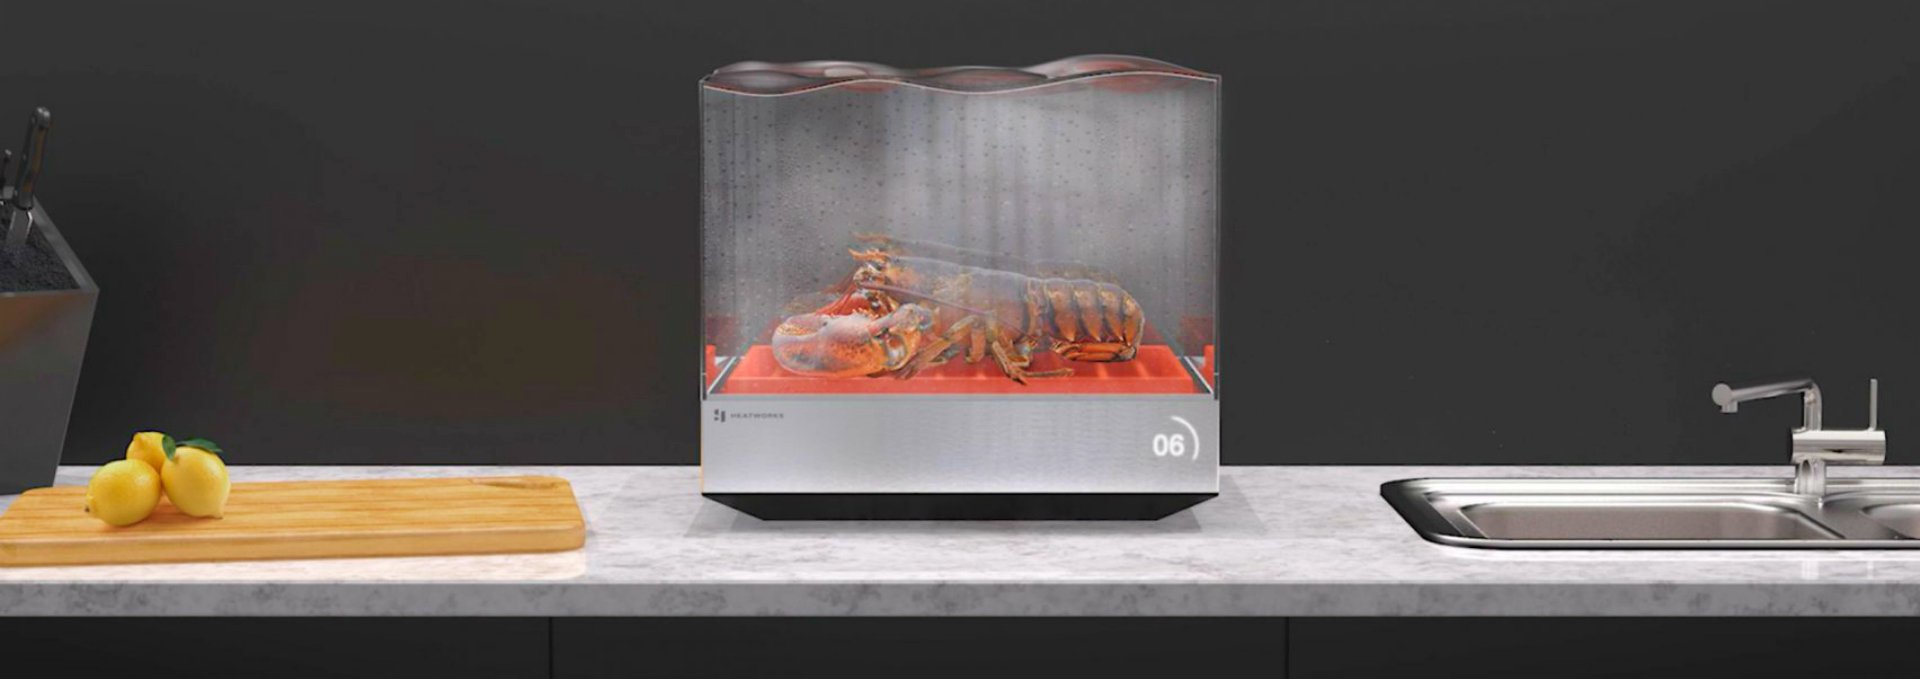 Heatworks Redesigns the Standard Dishwasher to Suit Micro Homes - Daily Design News - Tetra dishwasher - Ohmic Array Technology - app-controlled dishwasher for small homes ➤ Discover the season's newest design news and inspiration ideas. Visit Daily Design News and subscribe our newsletter! #dailydesignnews #designevents #Tetradishwasher #MicroHomes #smarthome